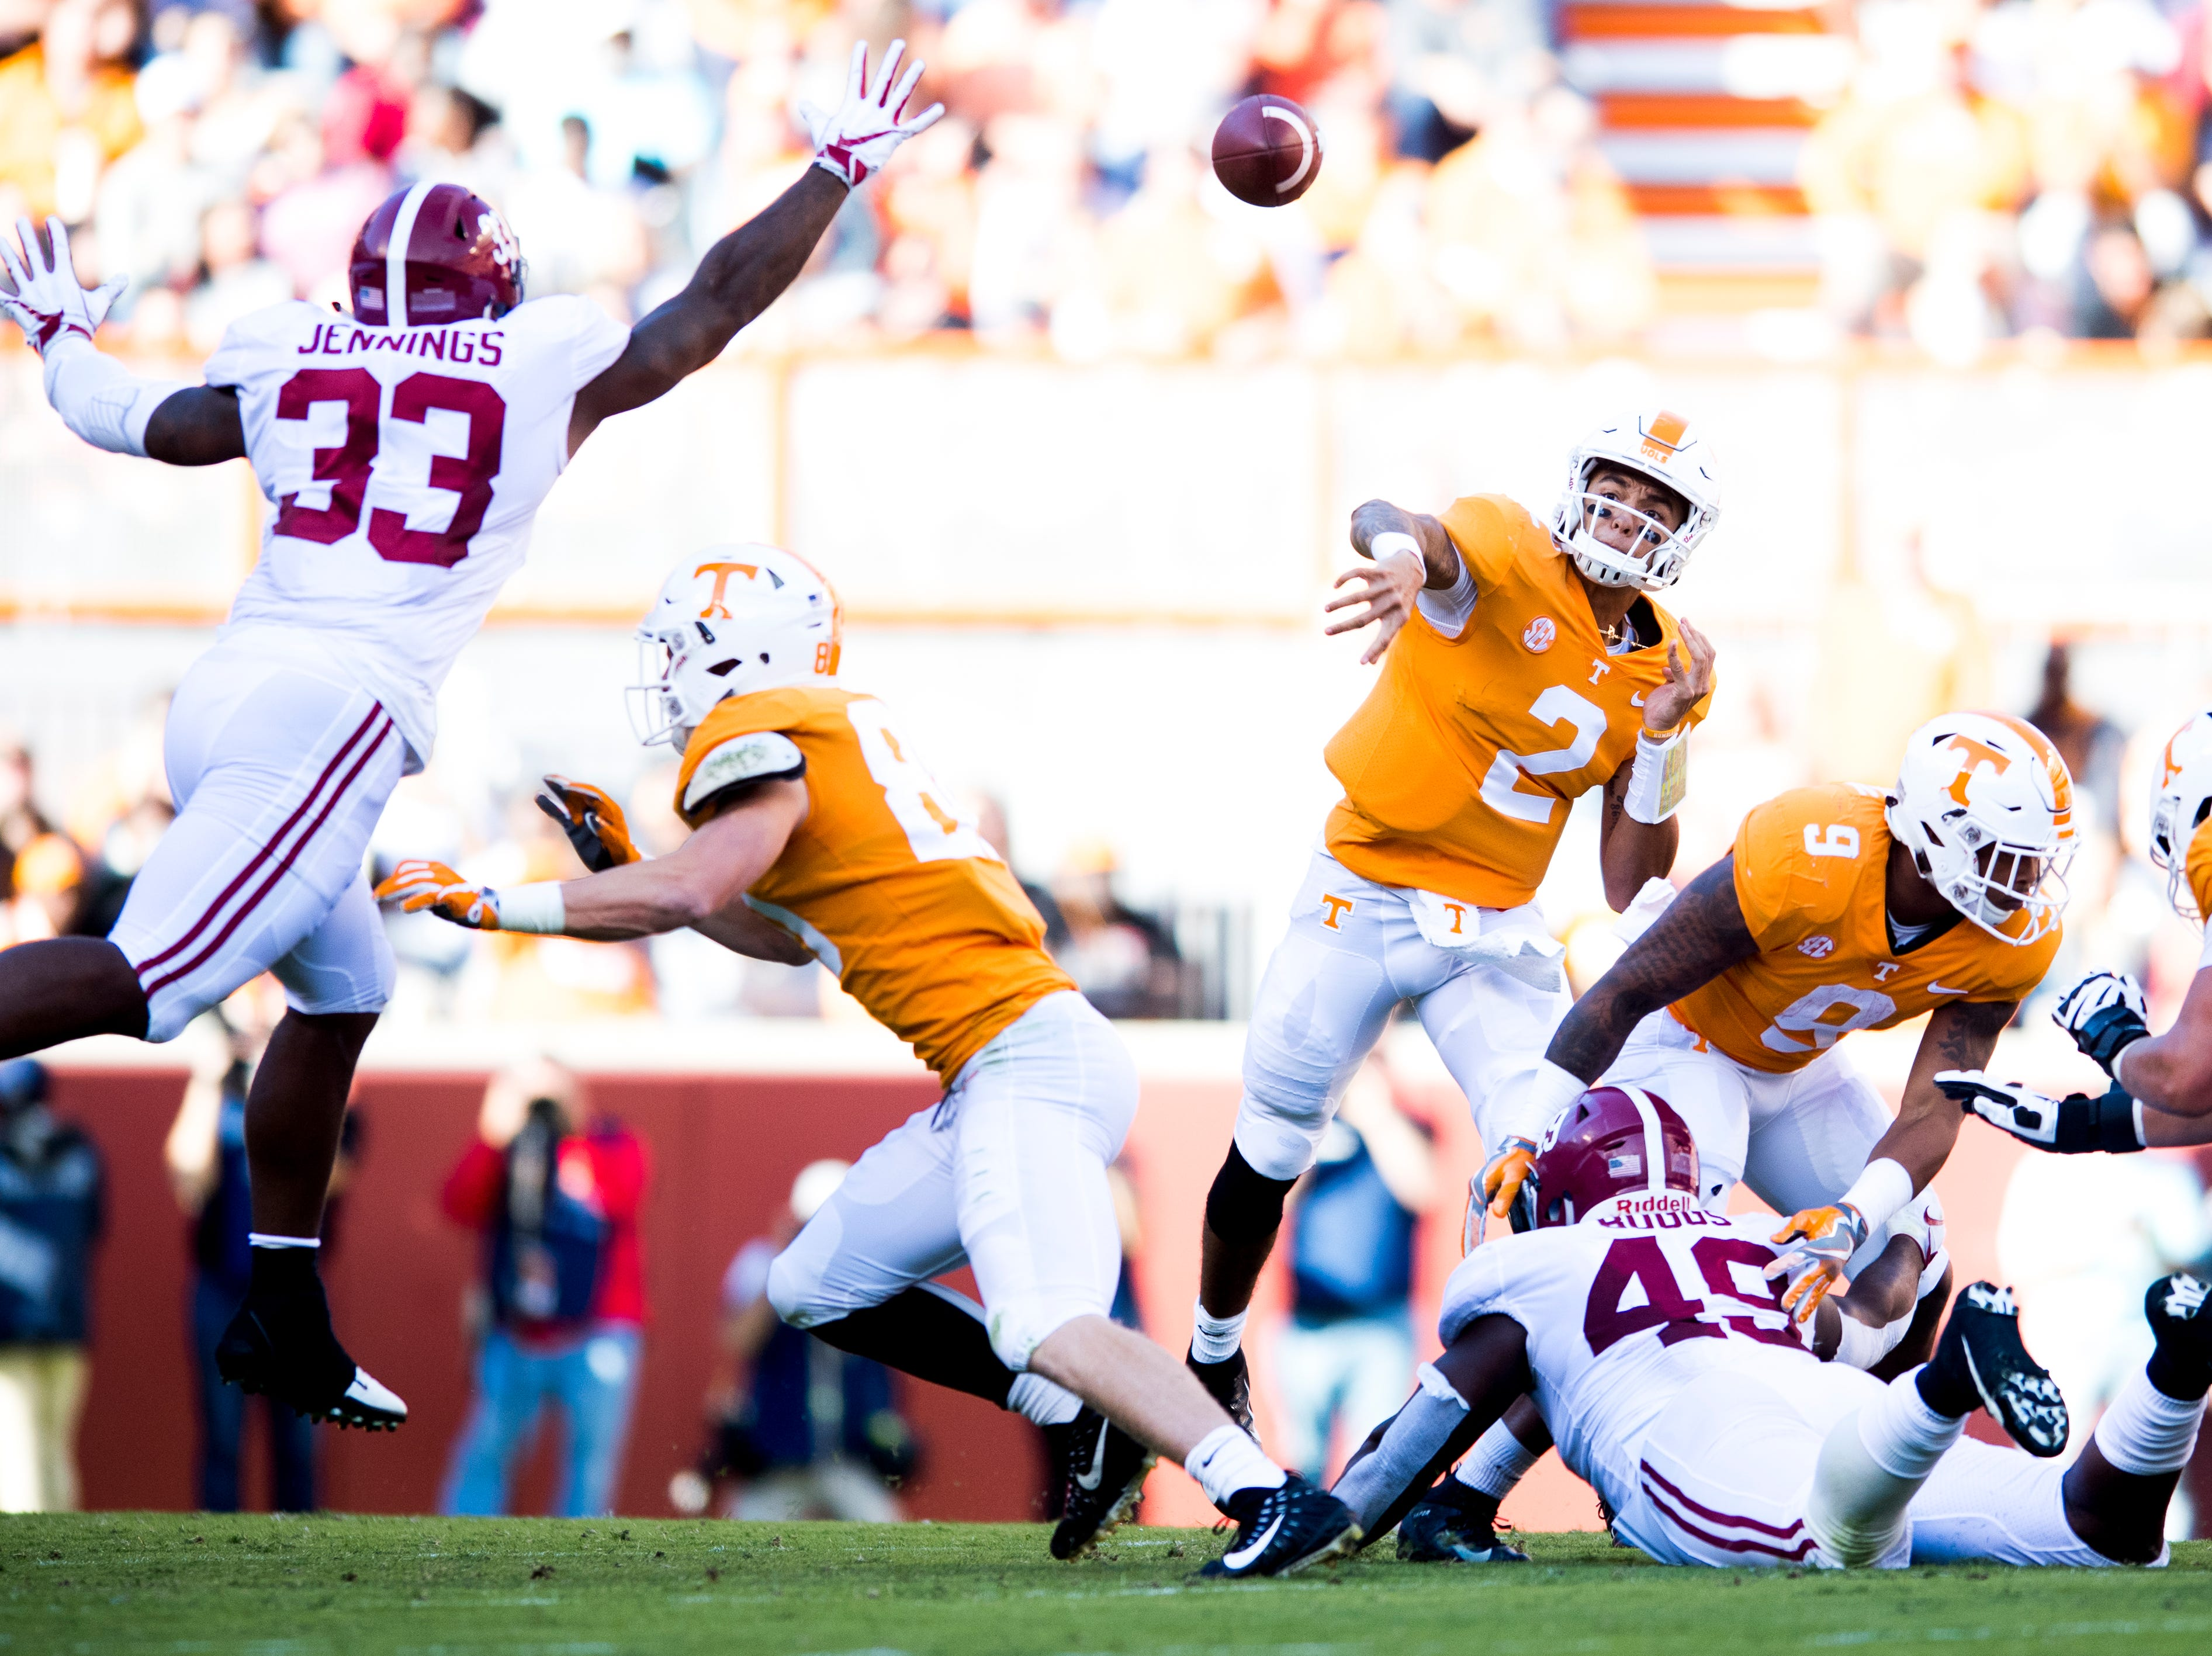 Tennessee quarterback Jarrett Guarantano (2) throws a pass down the field during a game between Tennessee and Alabama at Neyland Stadium in Knoxville, Tennessee on Saturday, October 20, 2018.